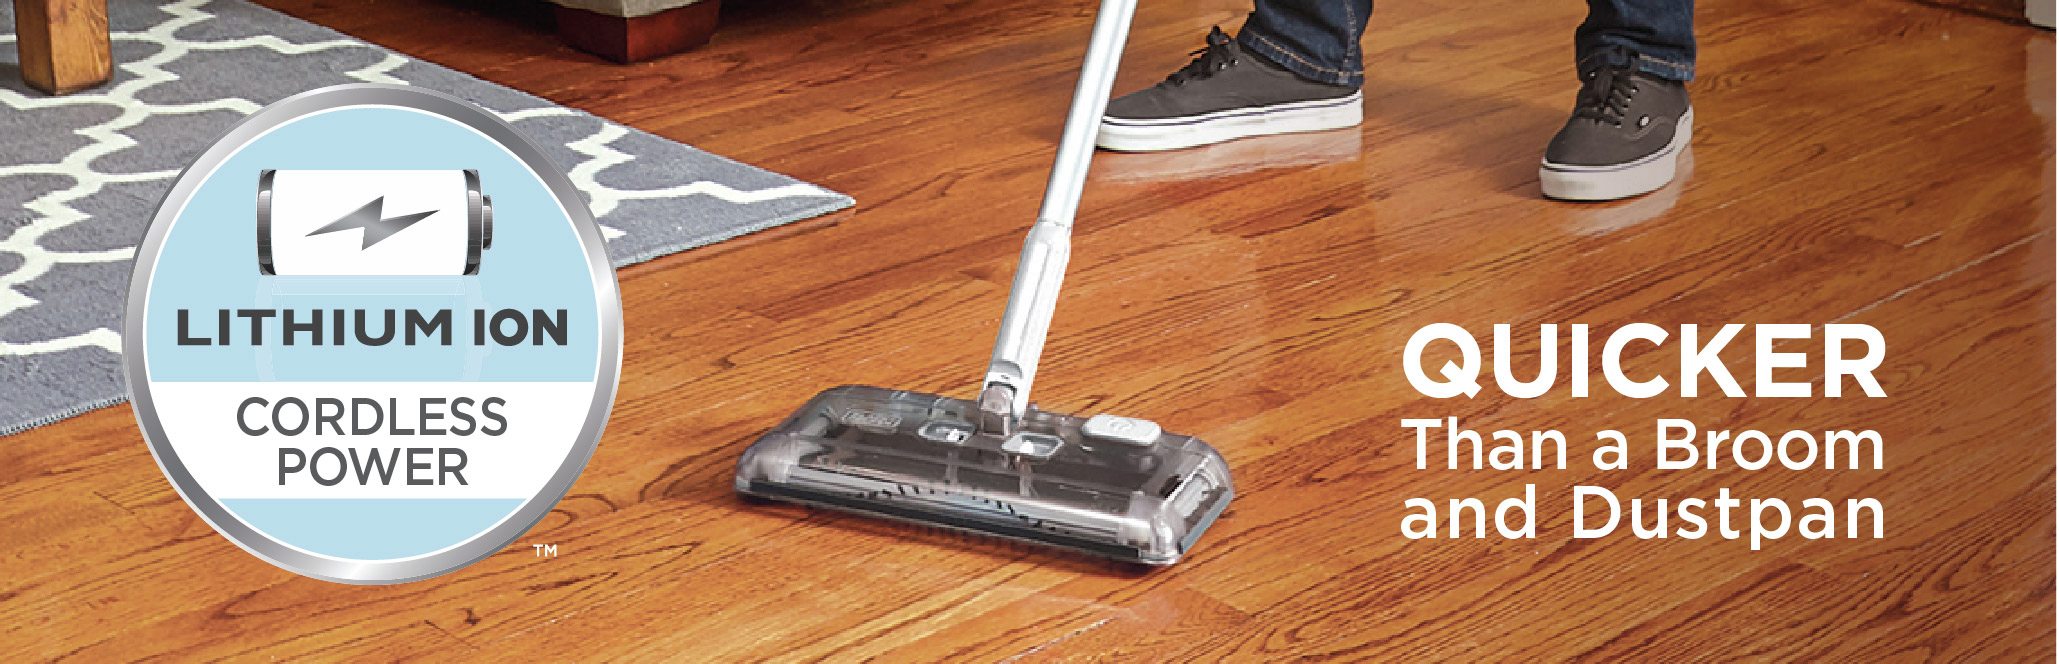 Quicker Than A Broom and Dustpan